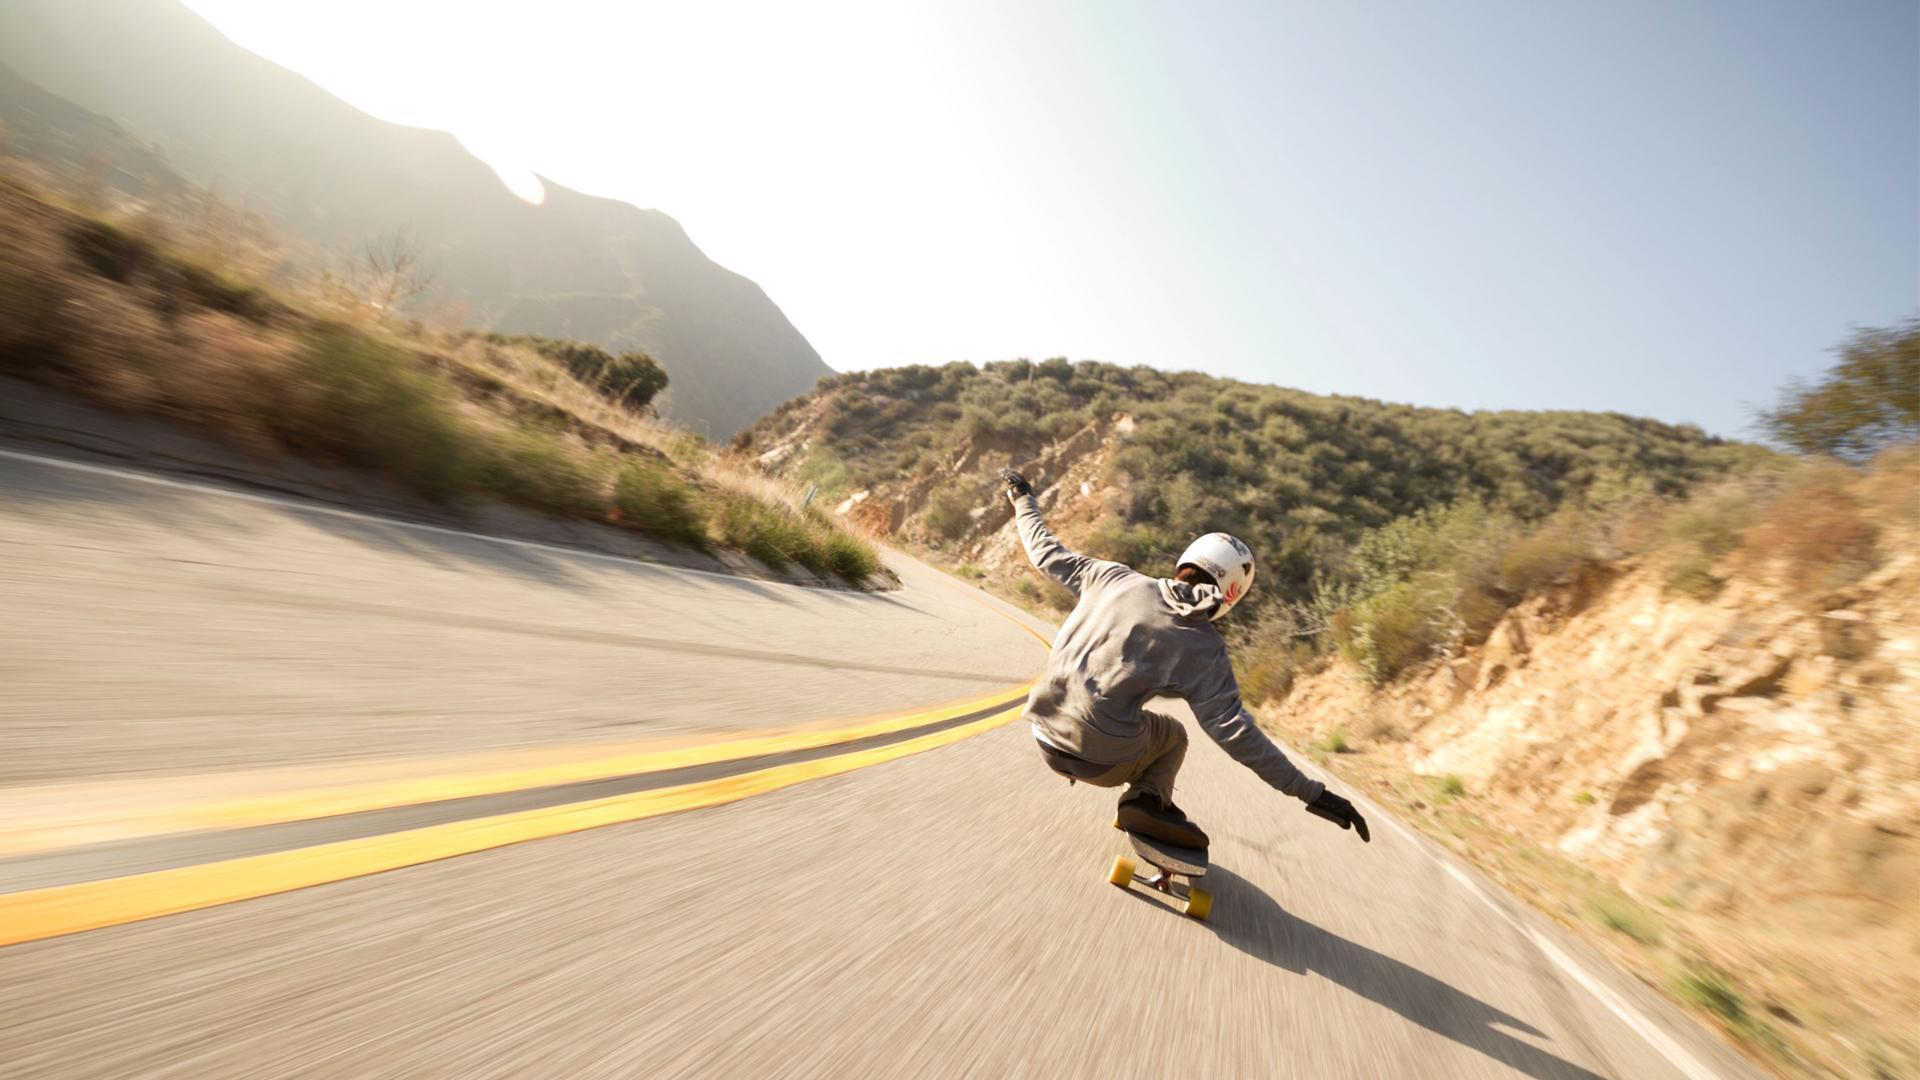 top longboarding wallpapers 1920x1080 - photo #2